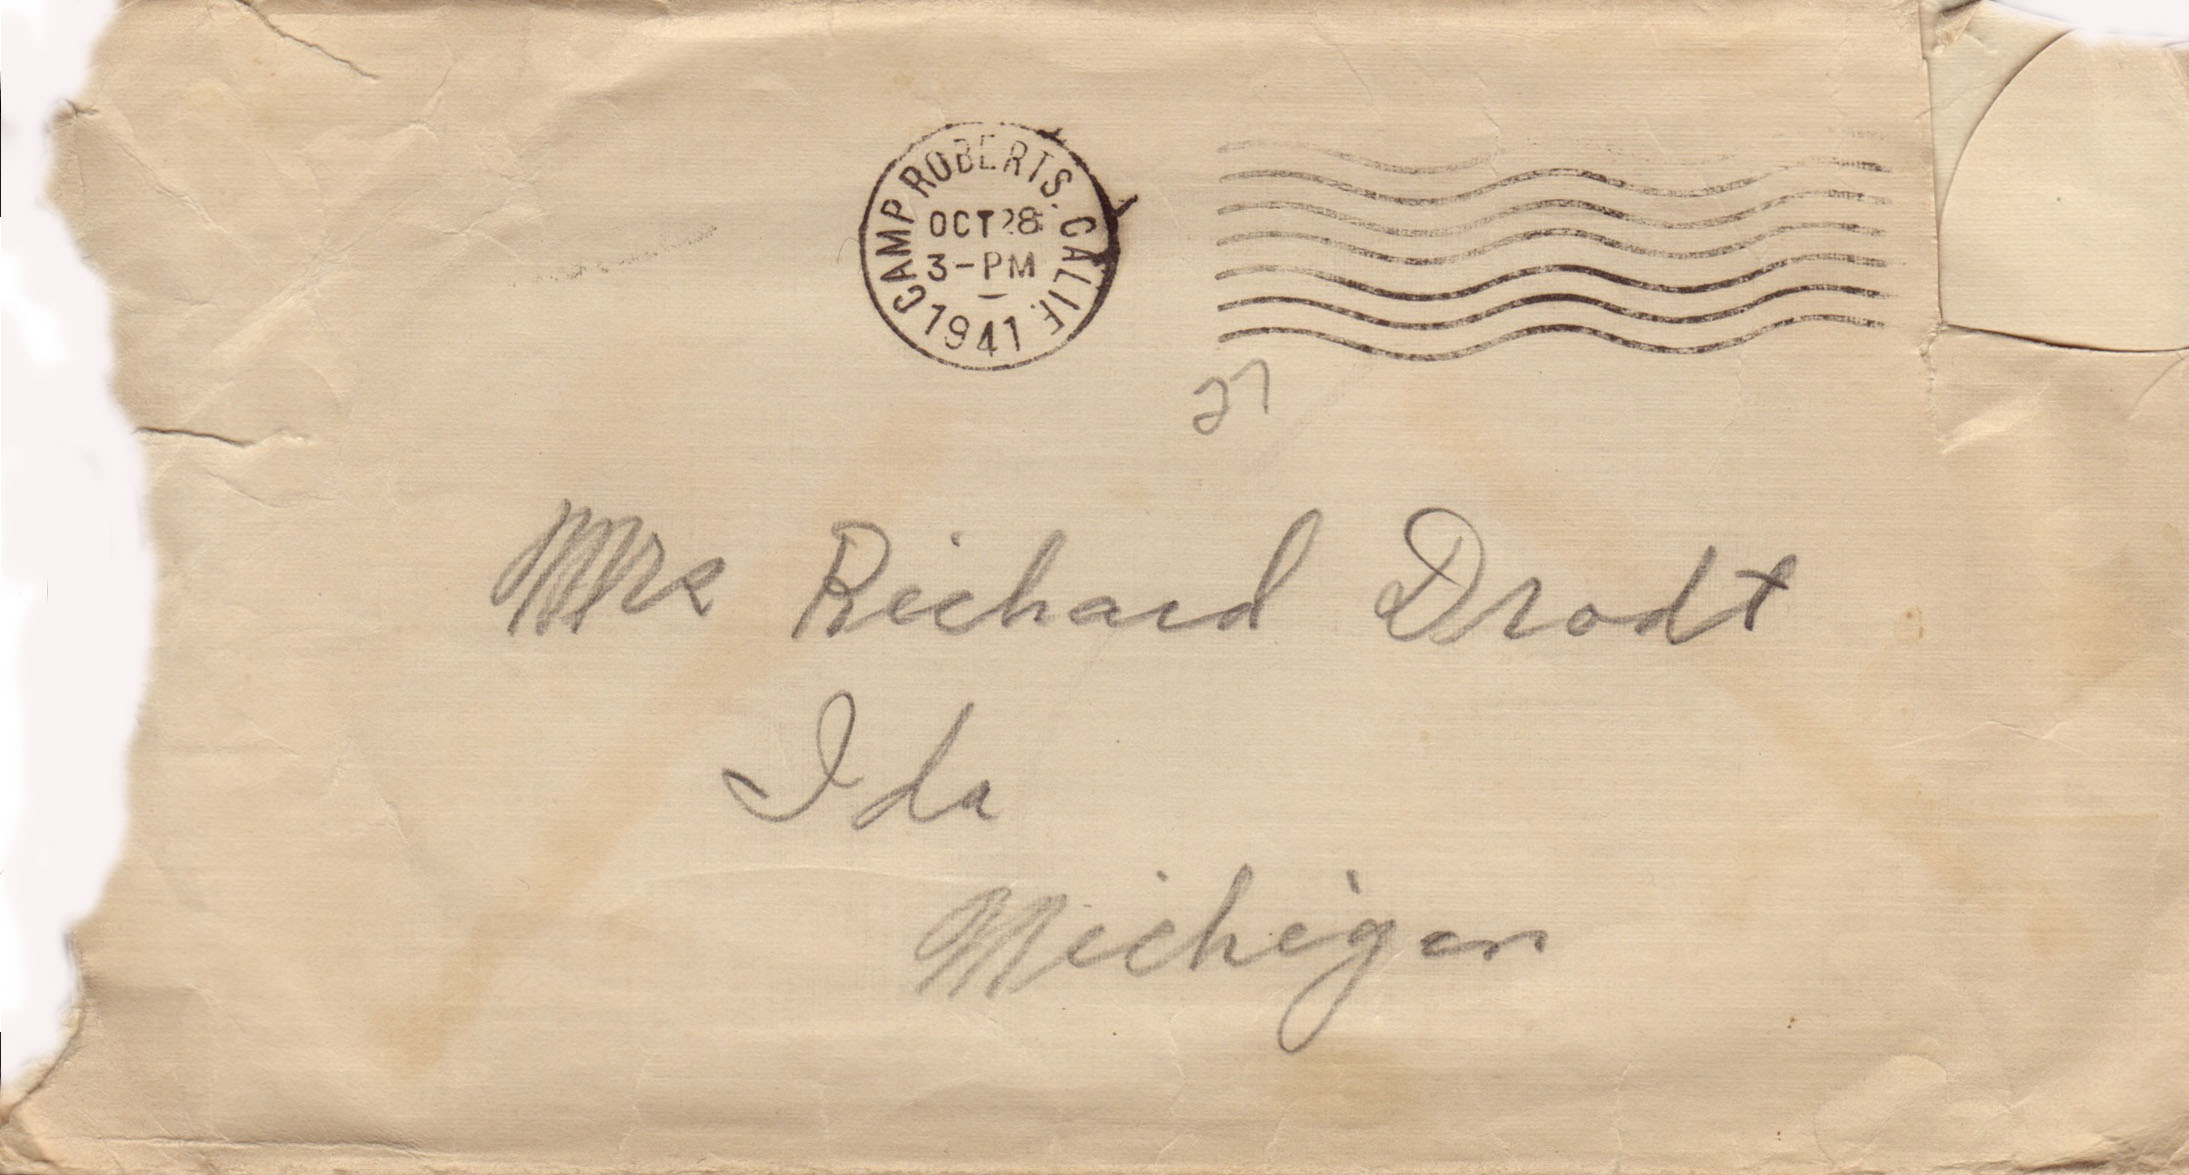 Envelope for Oct 28, 1941